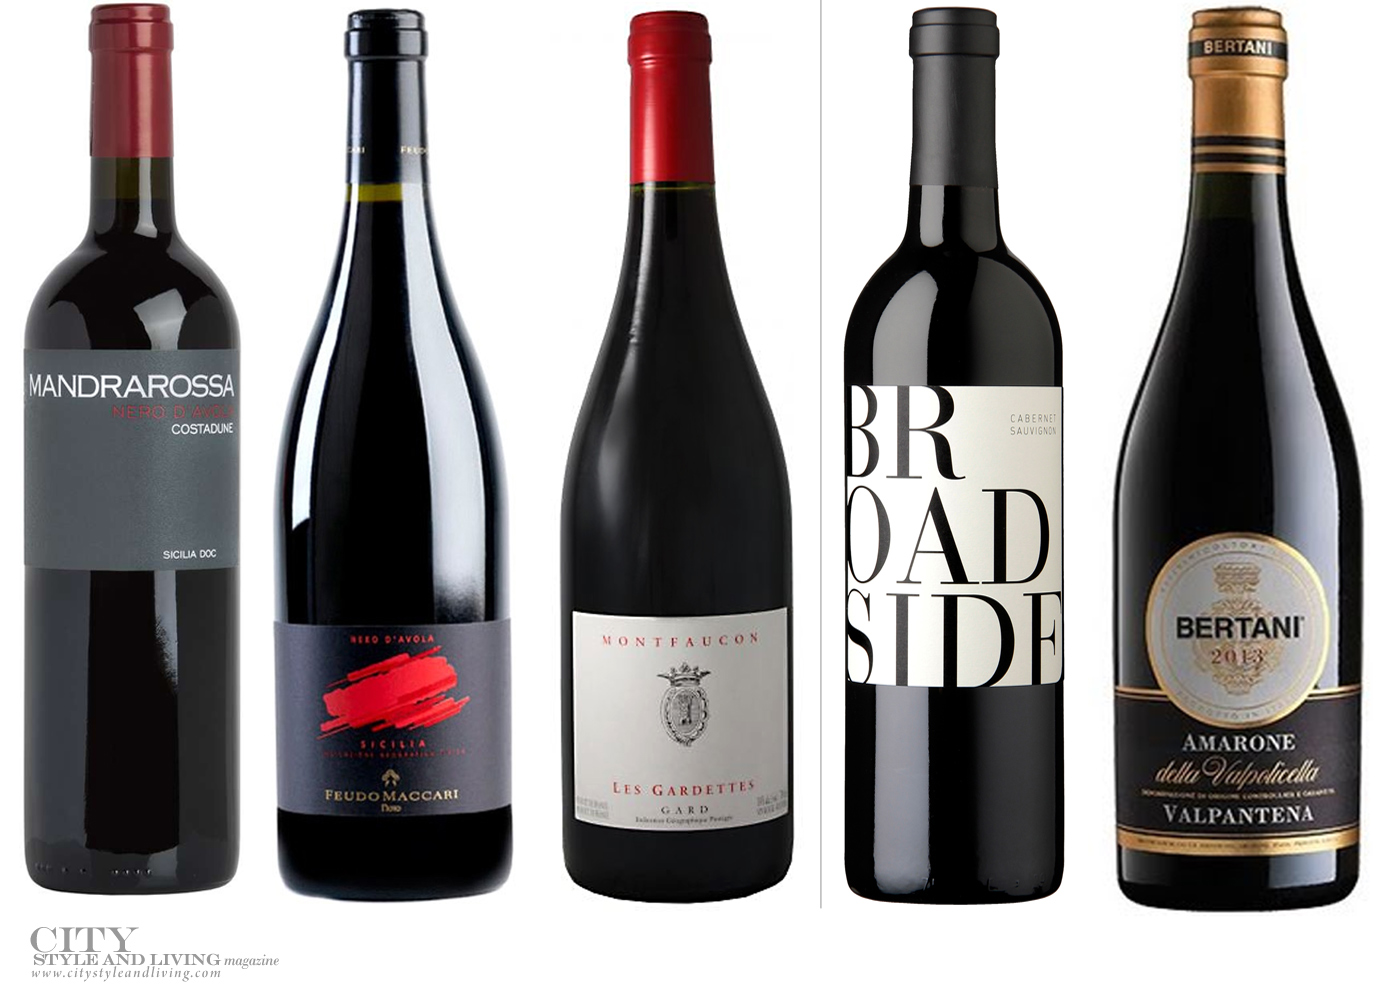 City Style and Living Magazine Winter wines and spirits best wine for holidays 5 wines